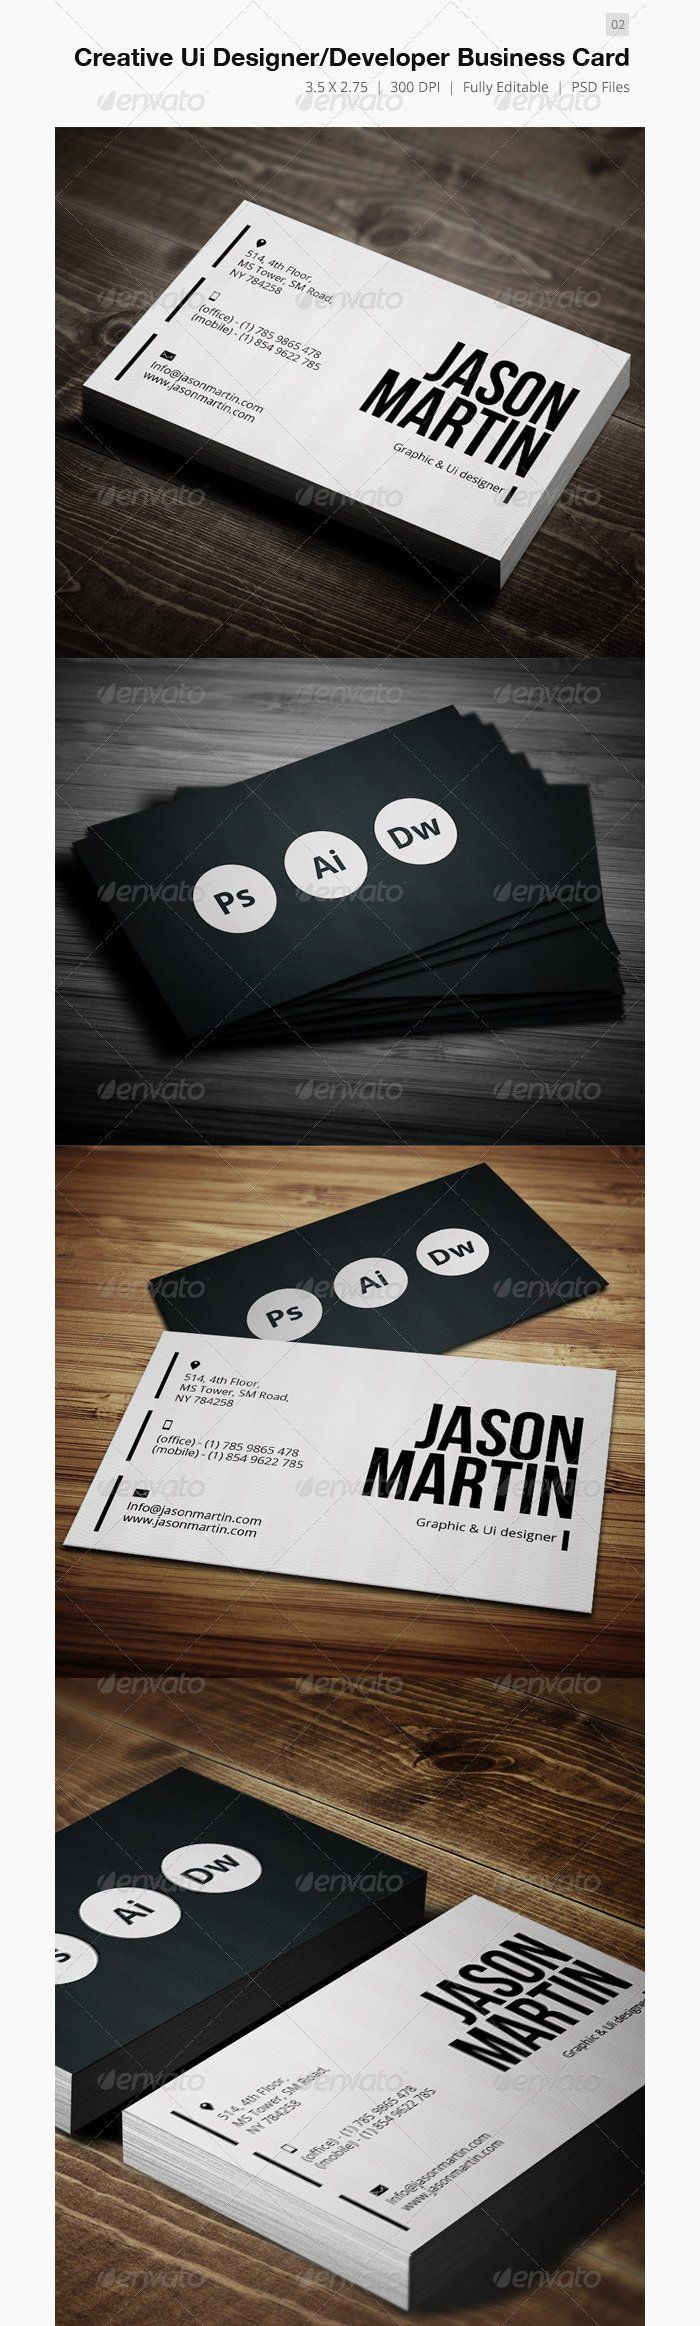 Creative ui designer developer business card premium template by creative ui designer developer business card premium template by bouncy for only reheart Image collections